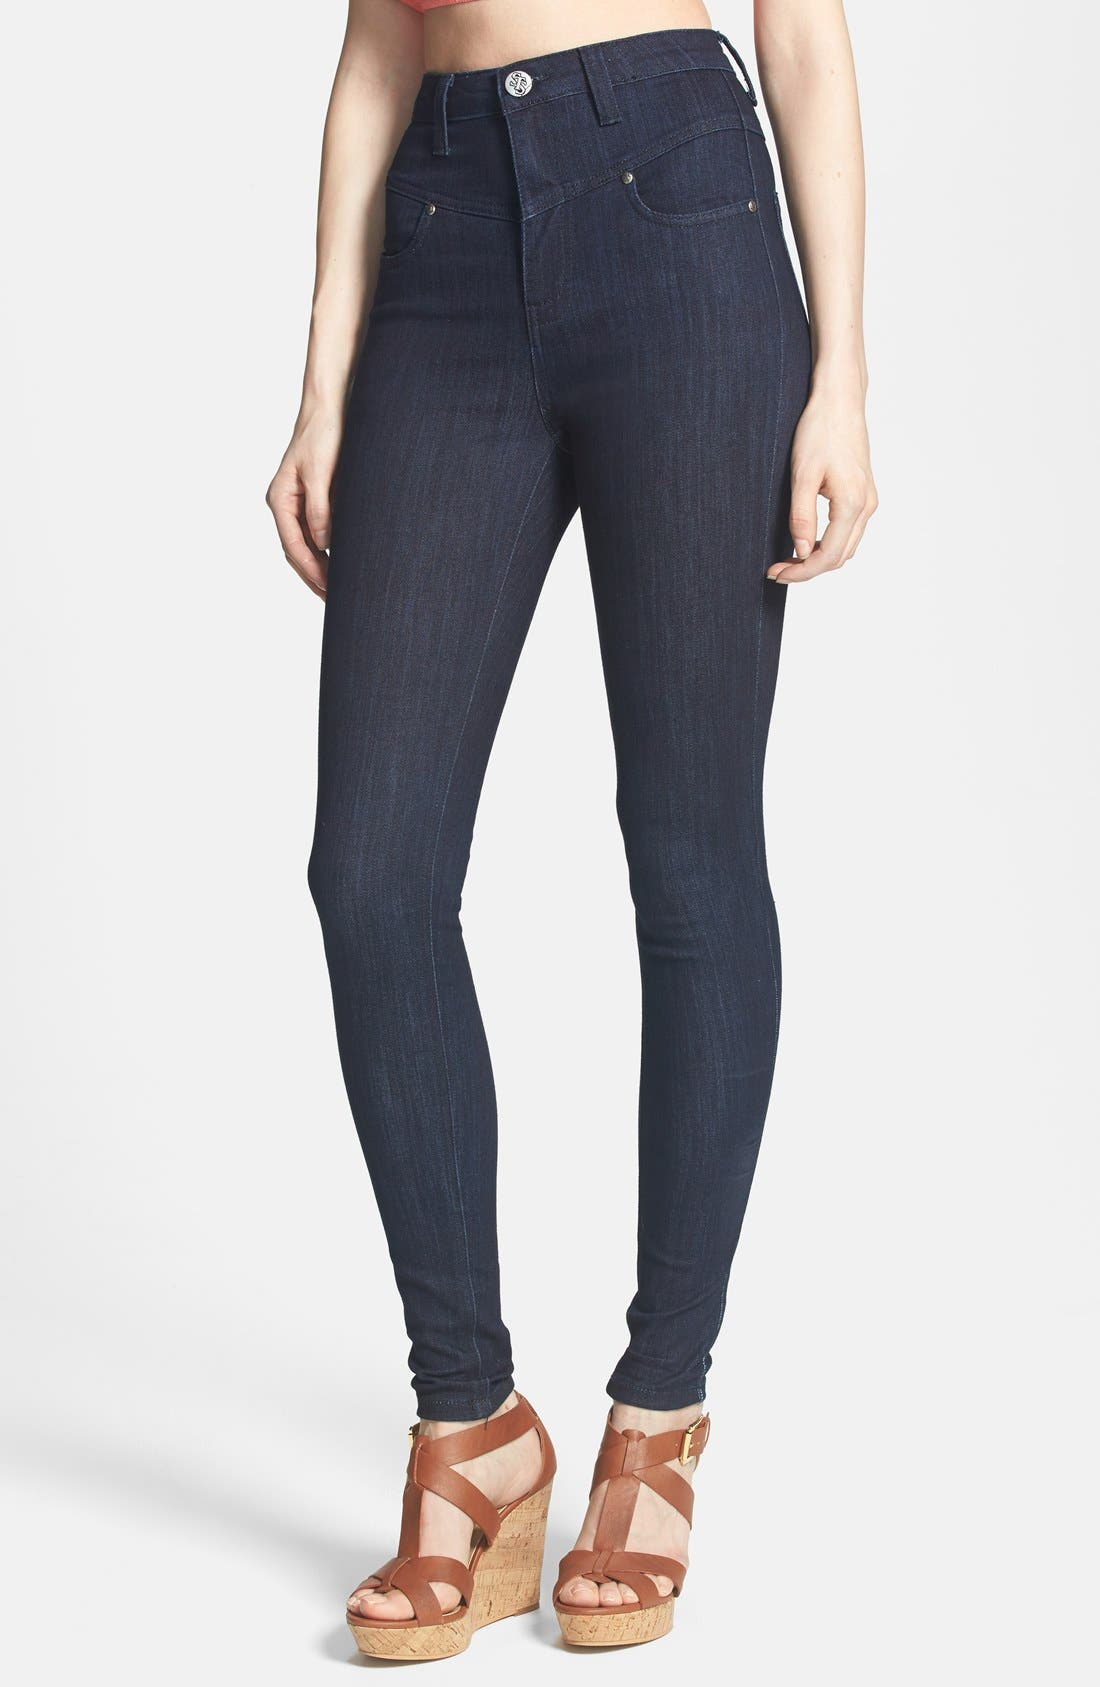 Alternate Image 1 Selected - STS Blue High Waist Skinny Jeans (Juniors)